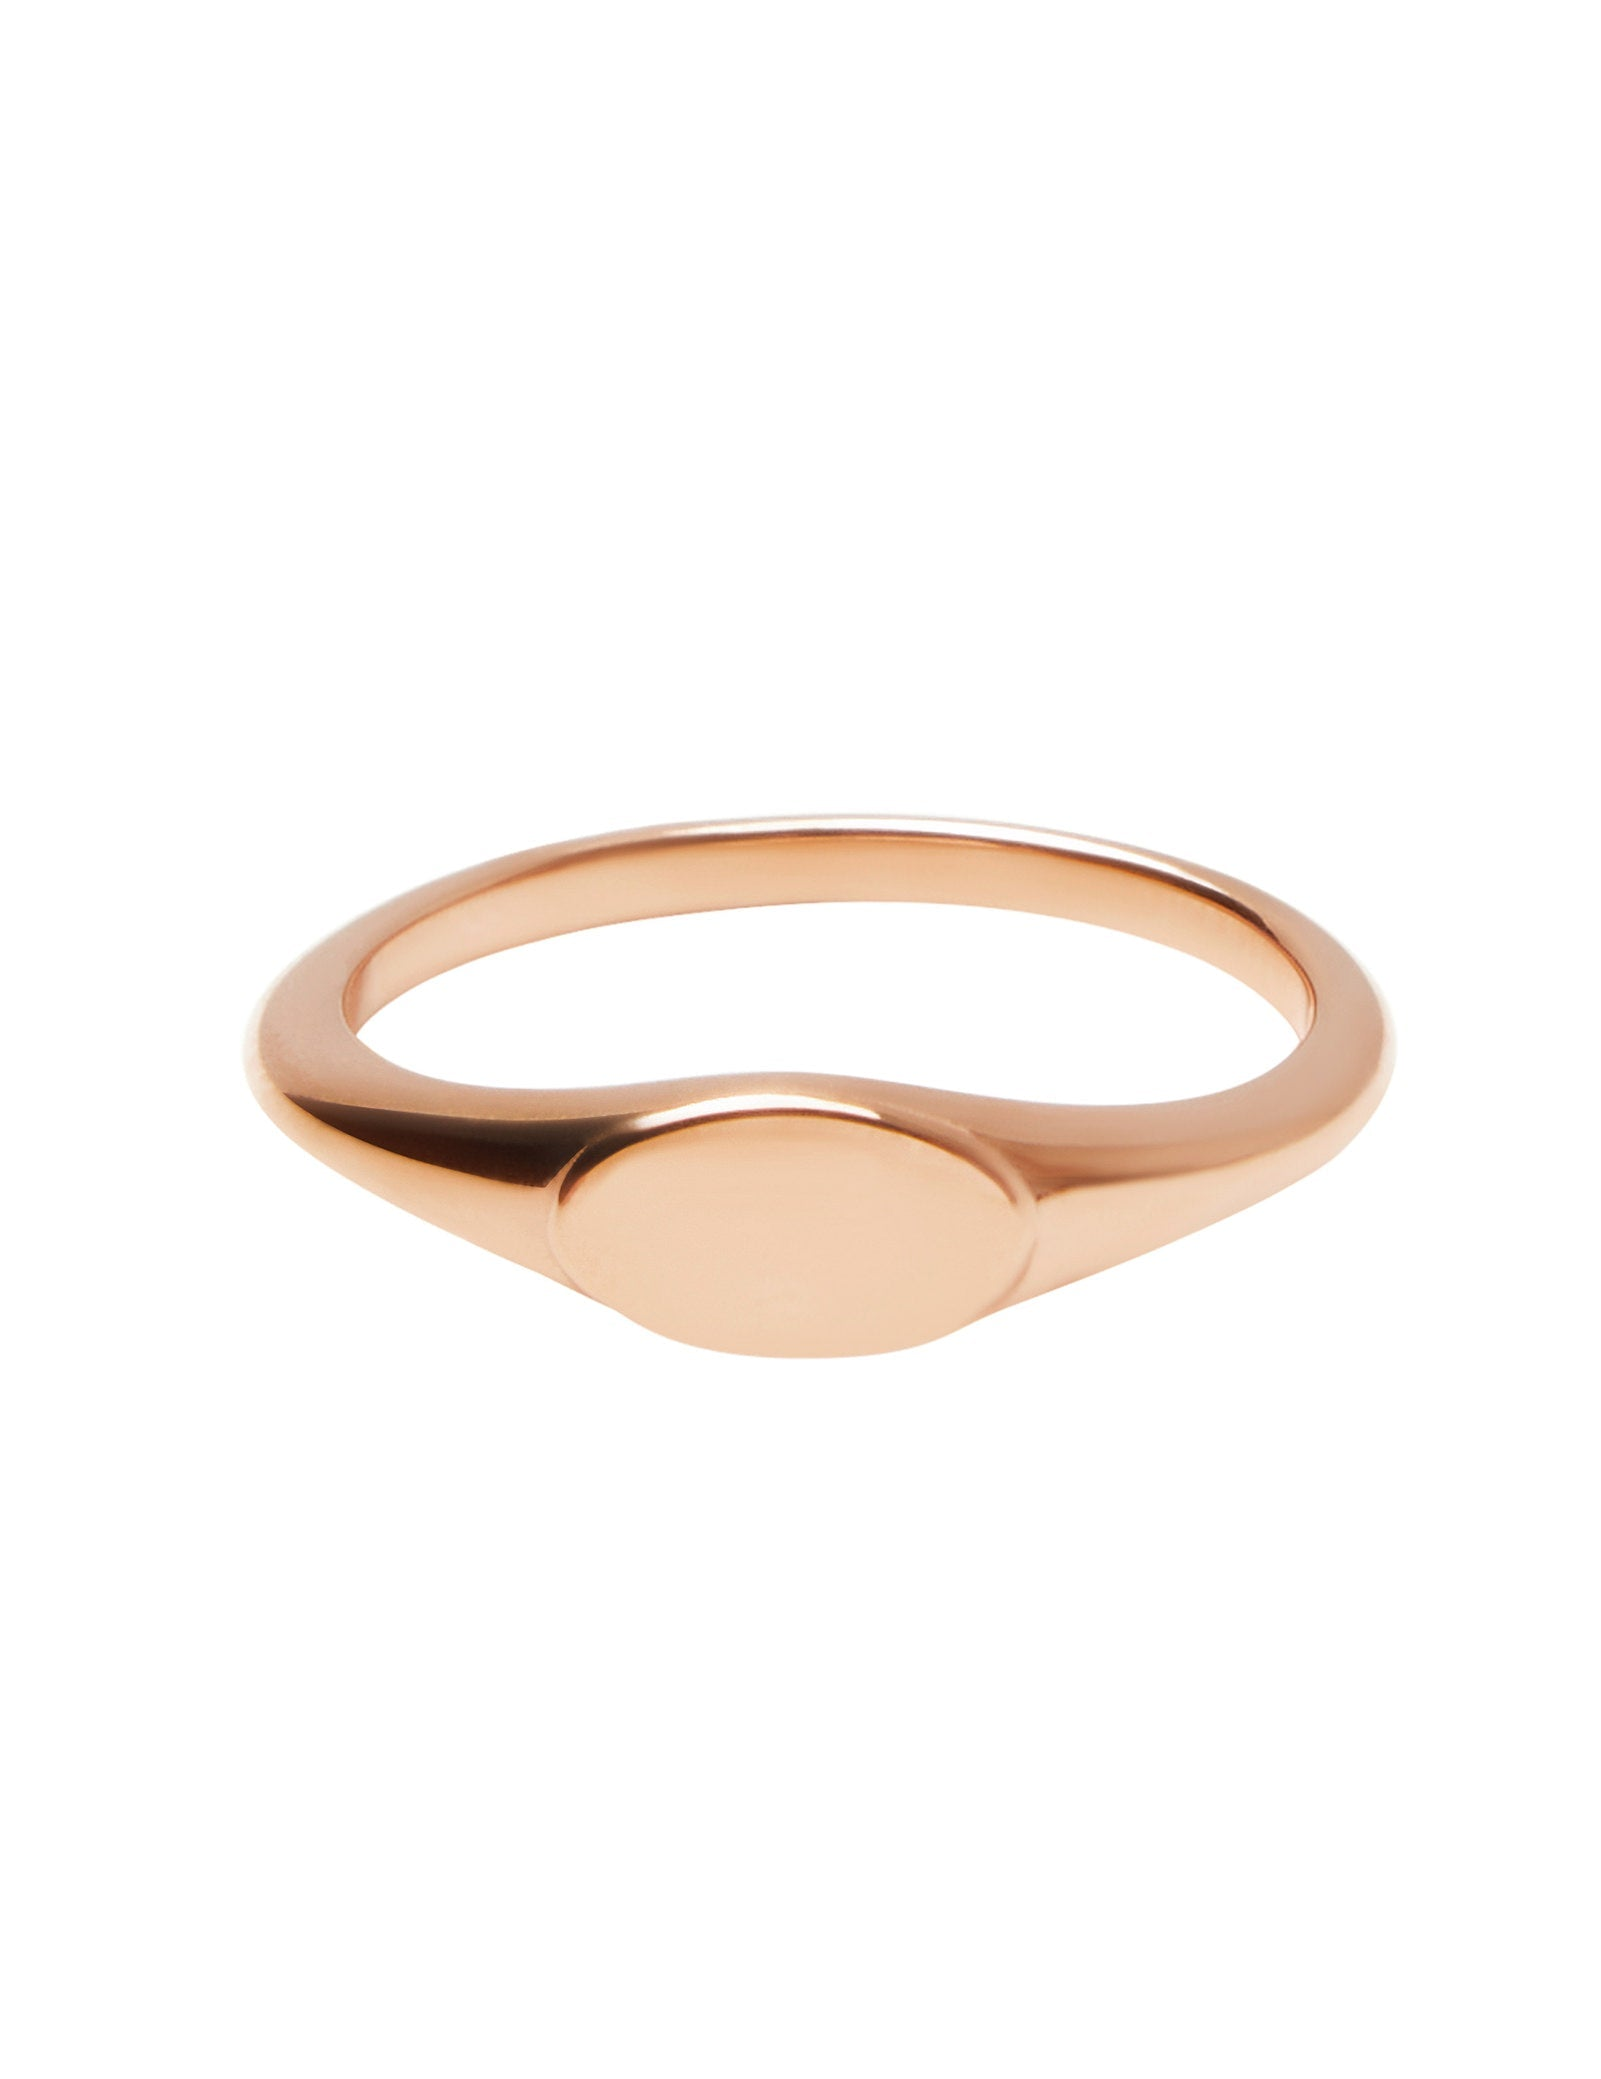 Pastiche  Radiance Ring - R1219RG-N